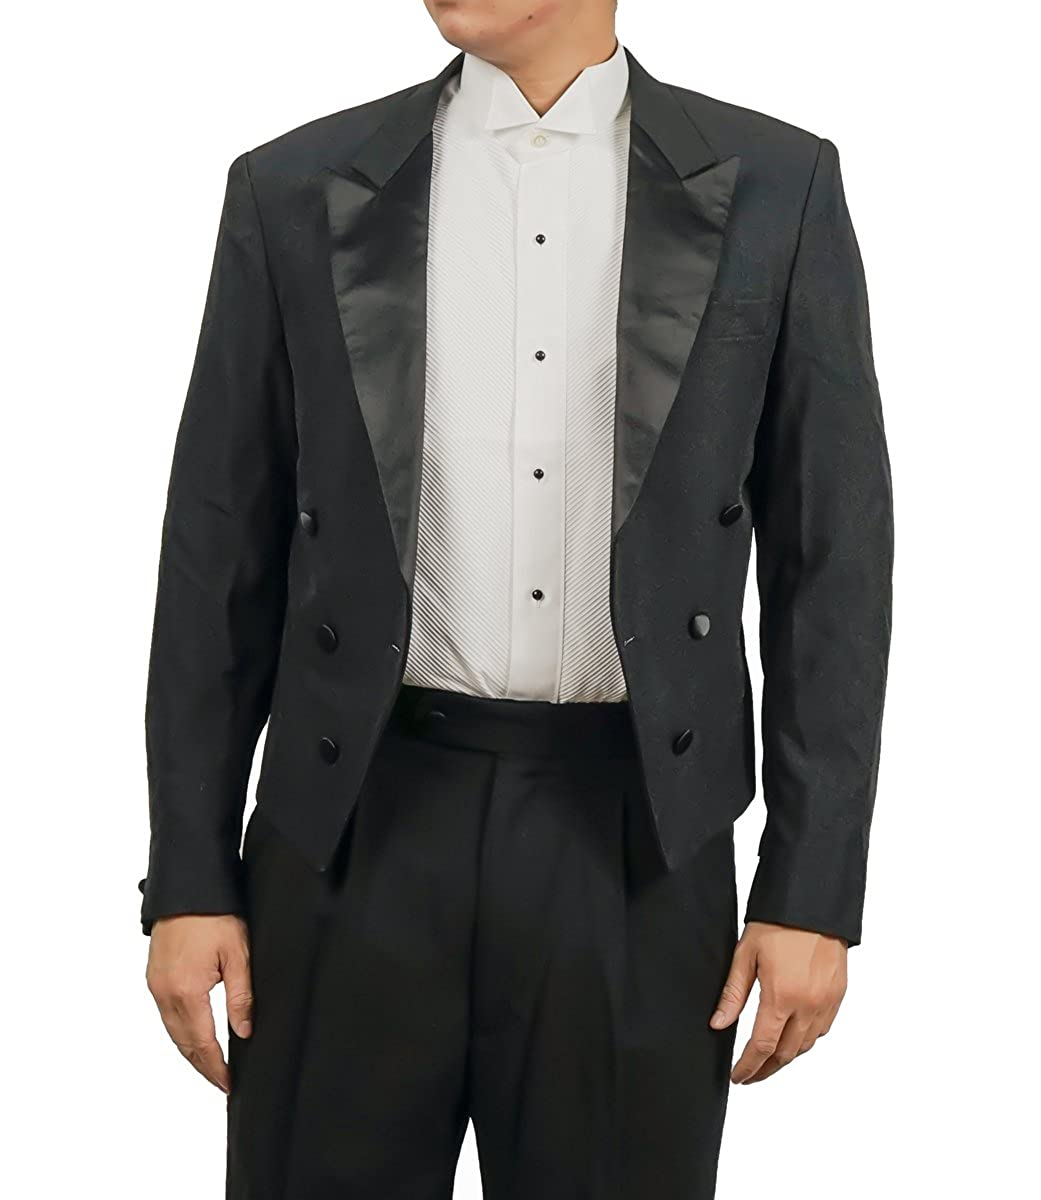 Broadway Tuxmakers Mens Black Tuxedo with Tails Suit Consists of Pants and Tailcoat black tailandpants